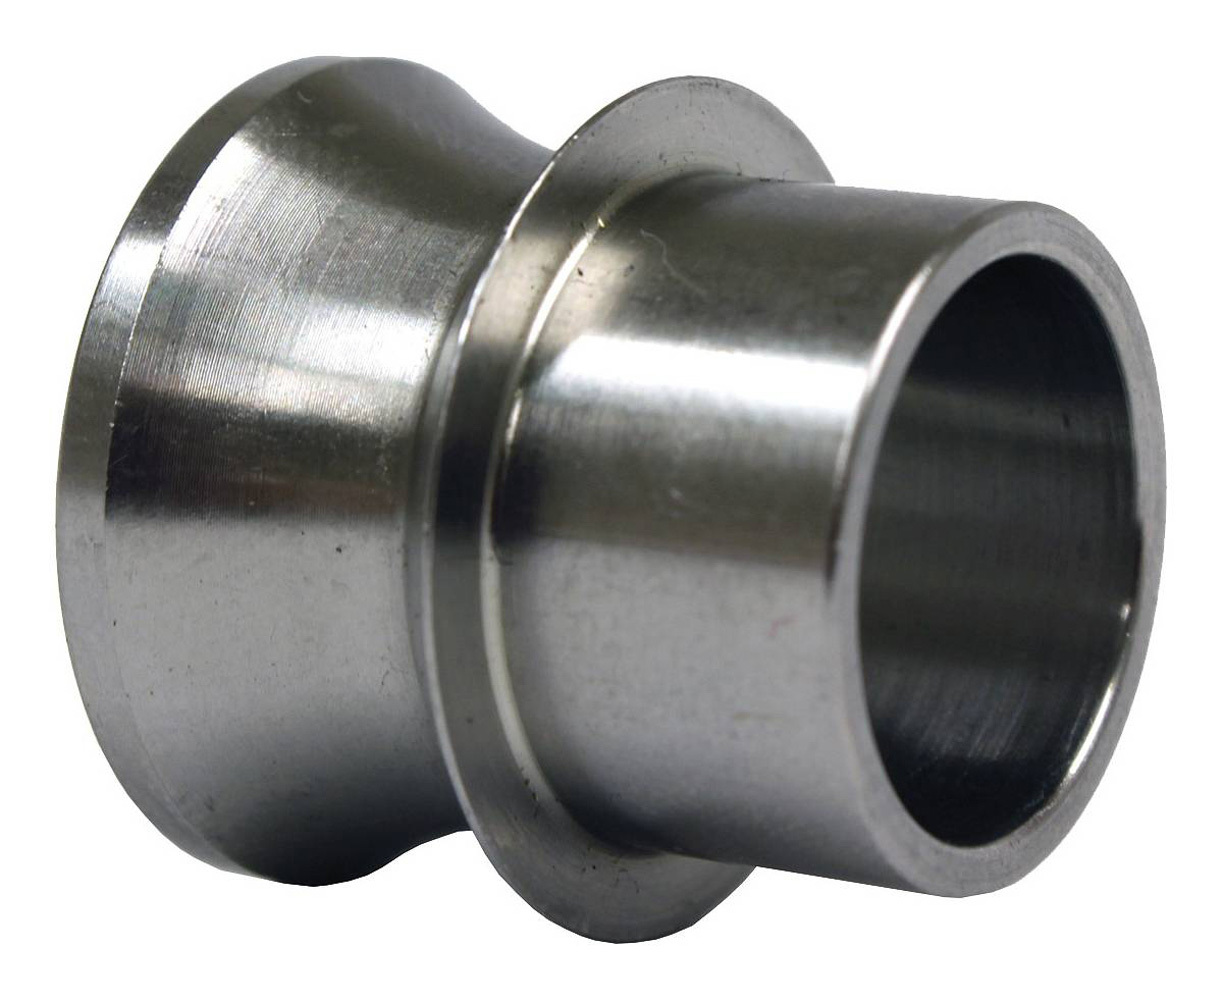 QA1 SG12-88 Rod End Bushing, 3/4 to 1/2 in Bore, High Misalignment, Stainless, Natural, Each